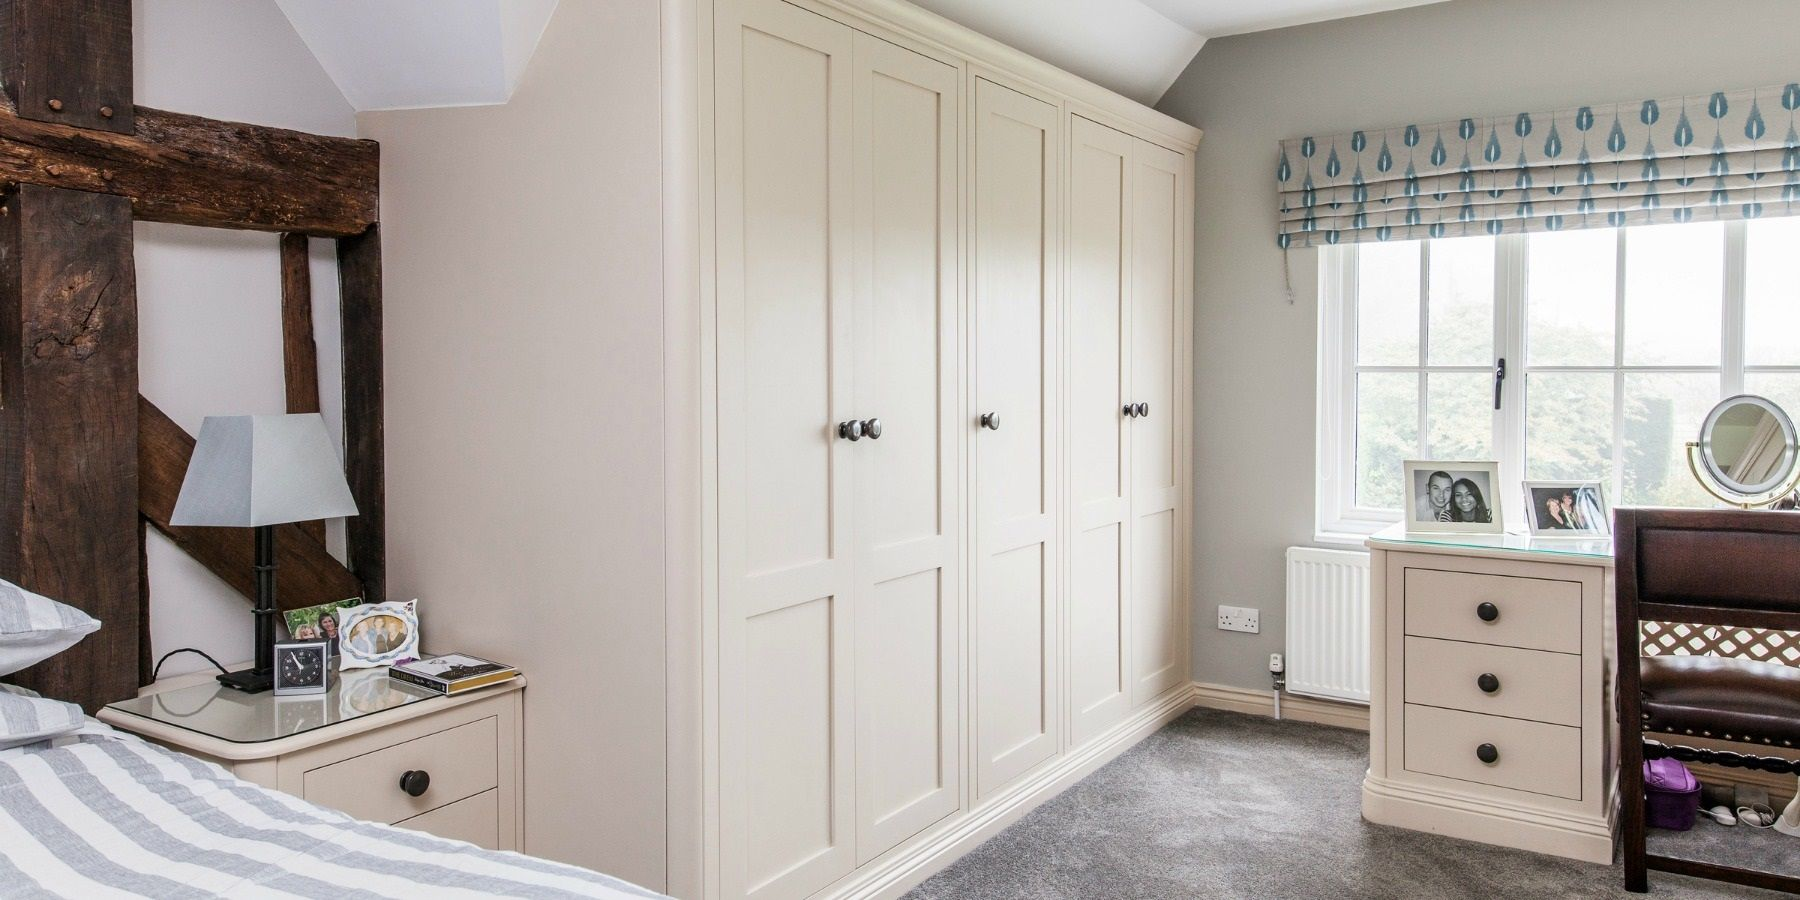 Handmade Freestanding Wardrobes Bedroom Furniture Burlanes Bespoke Bedroom Furniture And Freestanding Handpainted Wardrobes Solid Wood Bedroom Furniture Furniture Bedroom Furniture